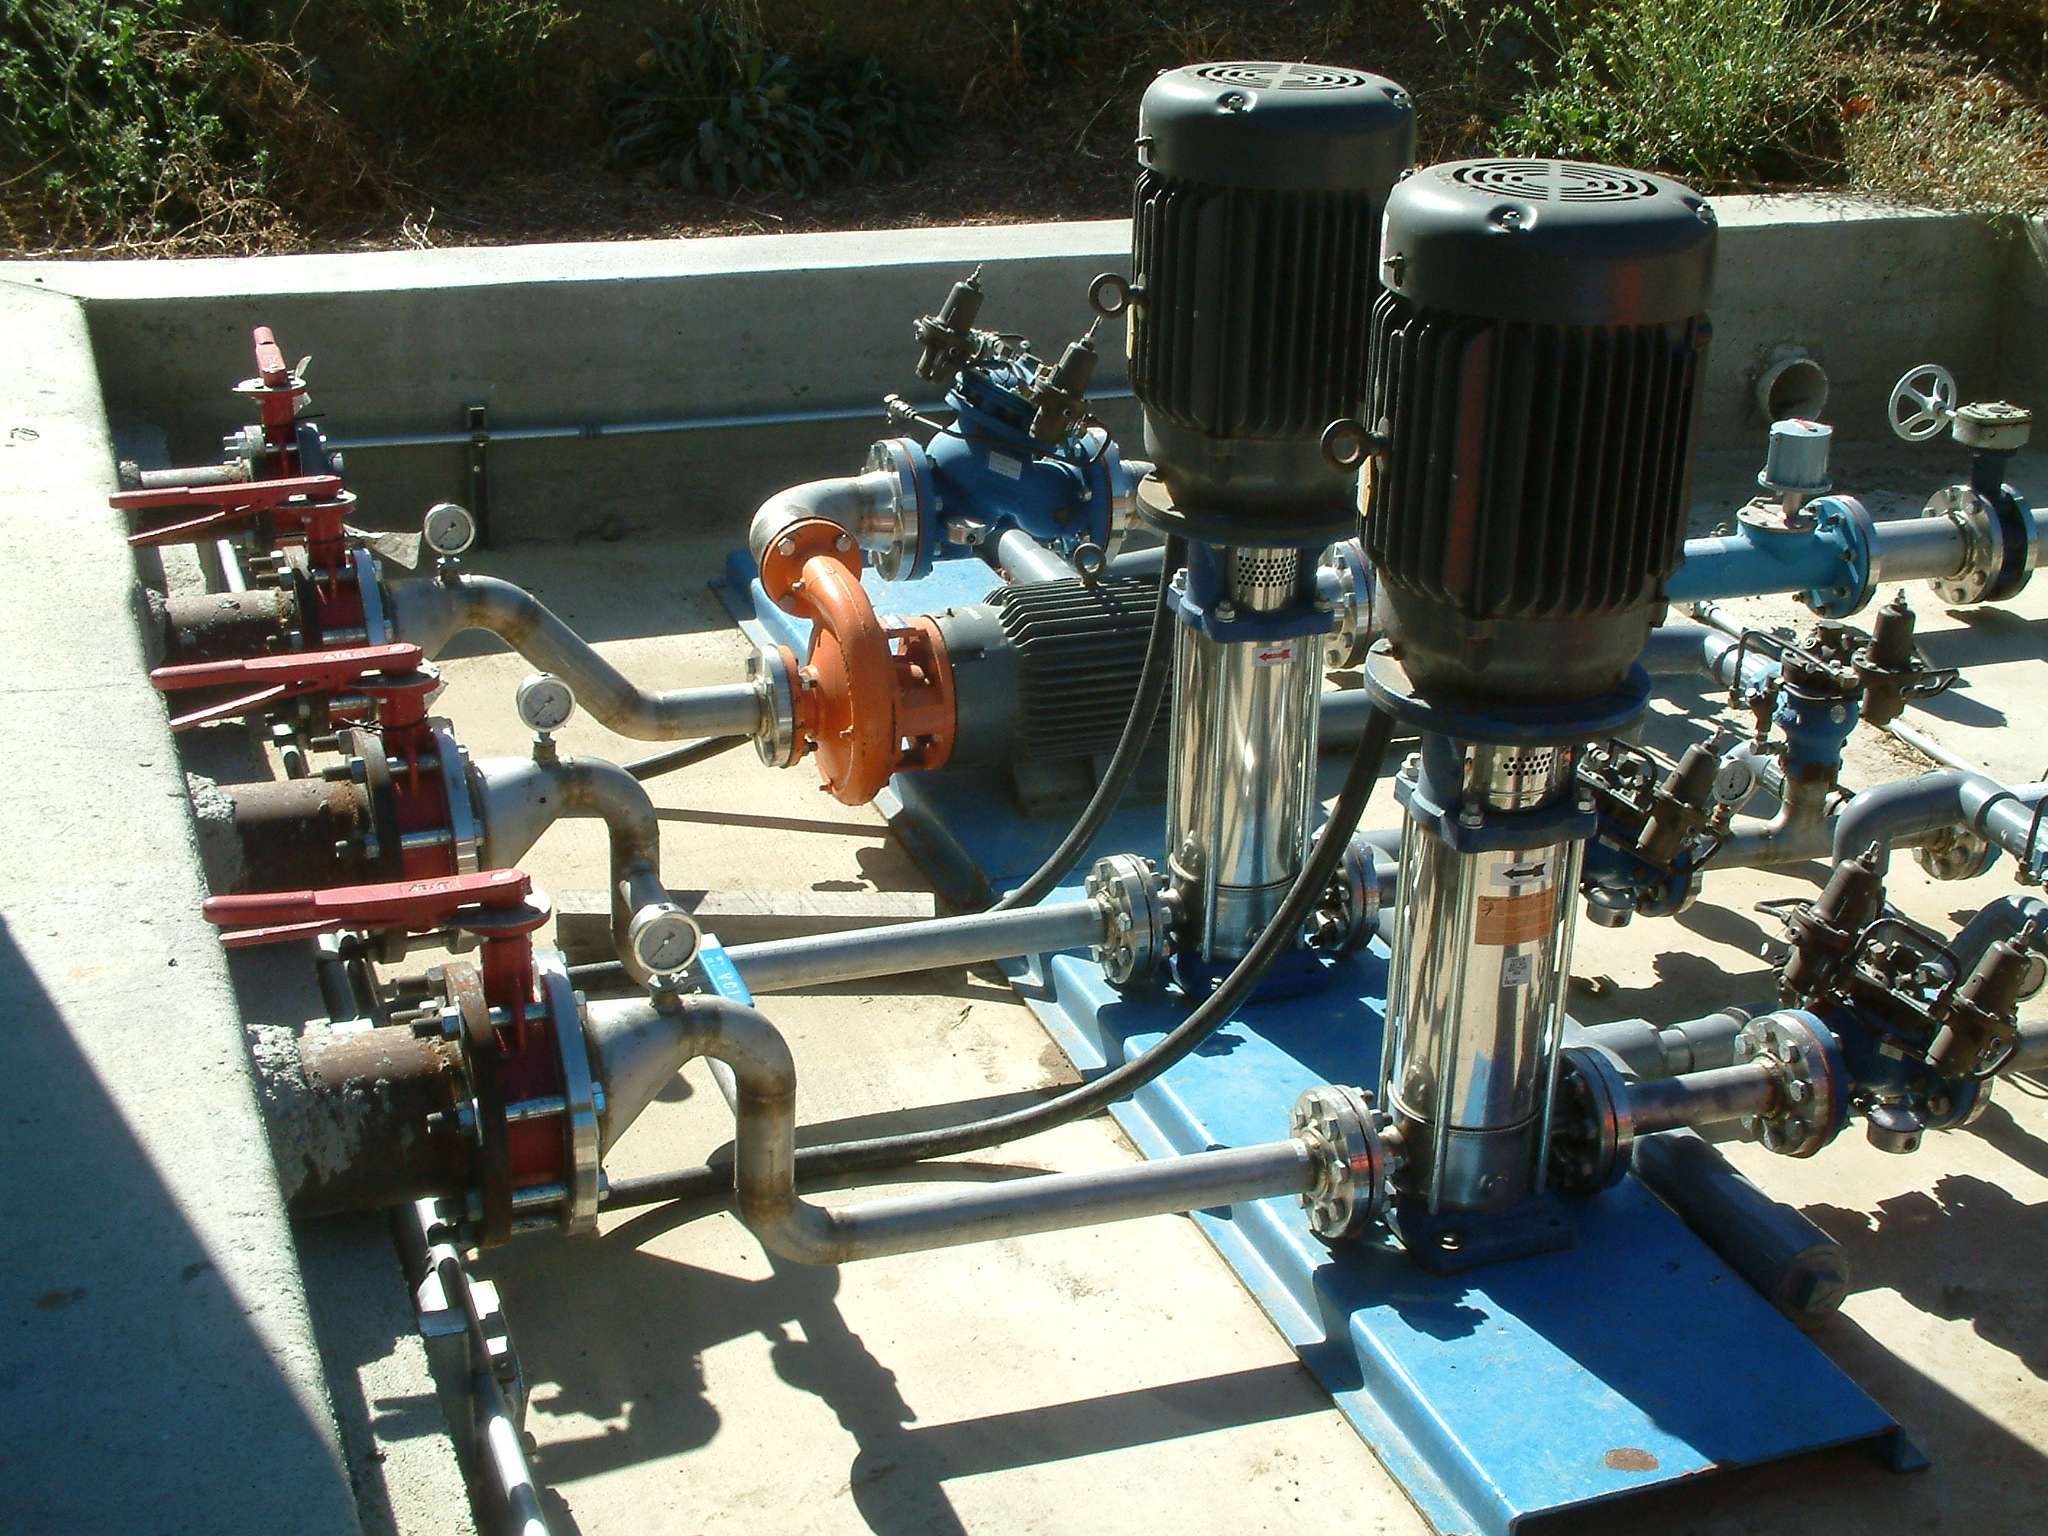 ultizone, high pressure irrigation pump system.